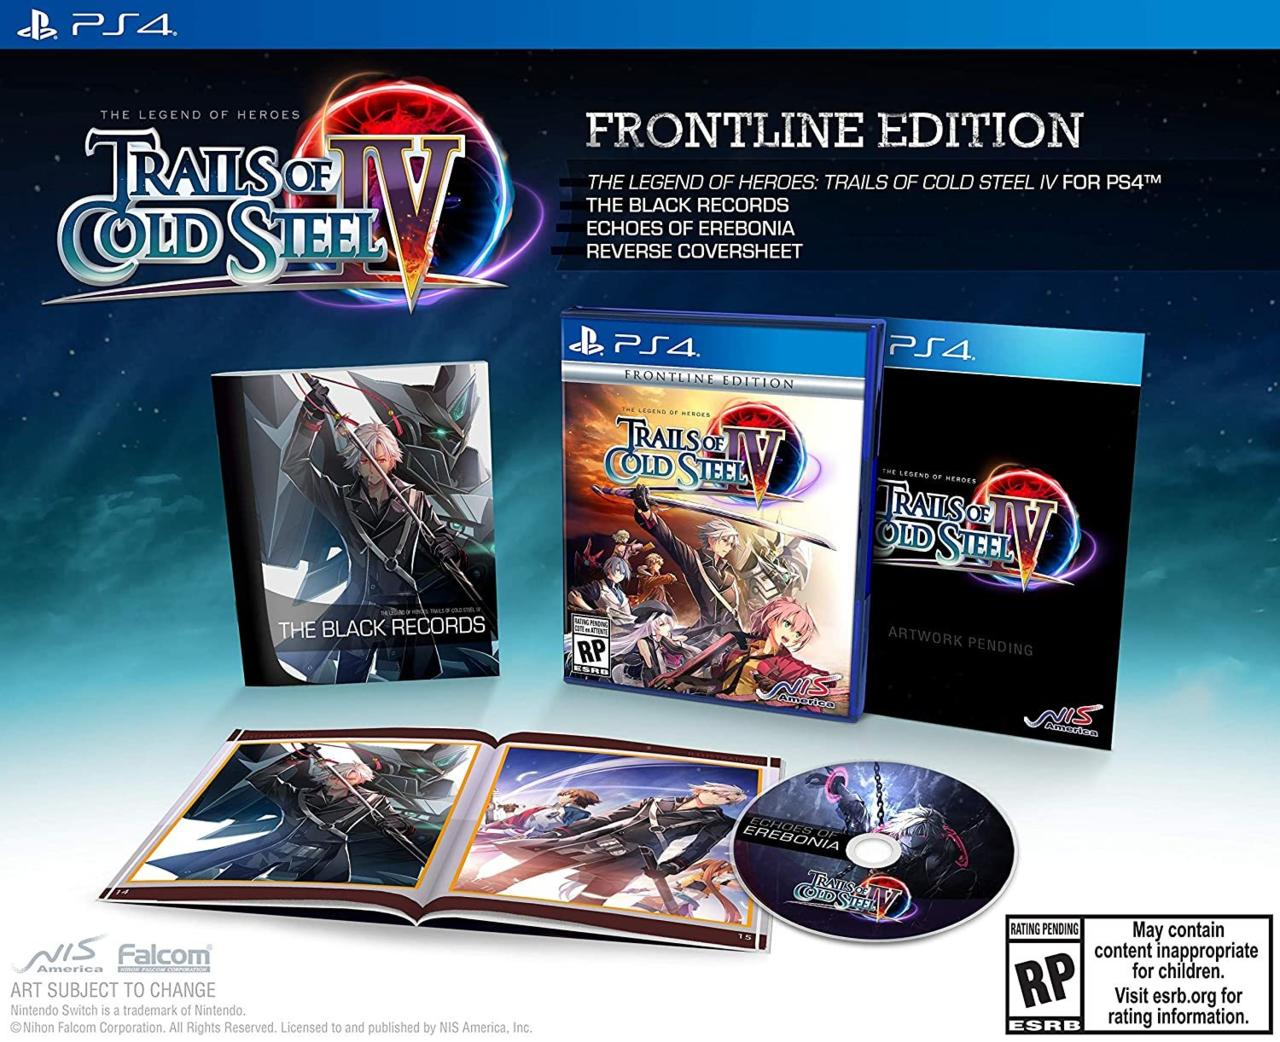 Trails of Cold Steel IV's Frontline edition is available for $60.